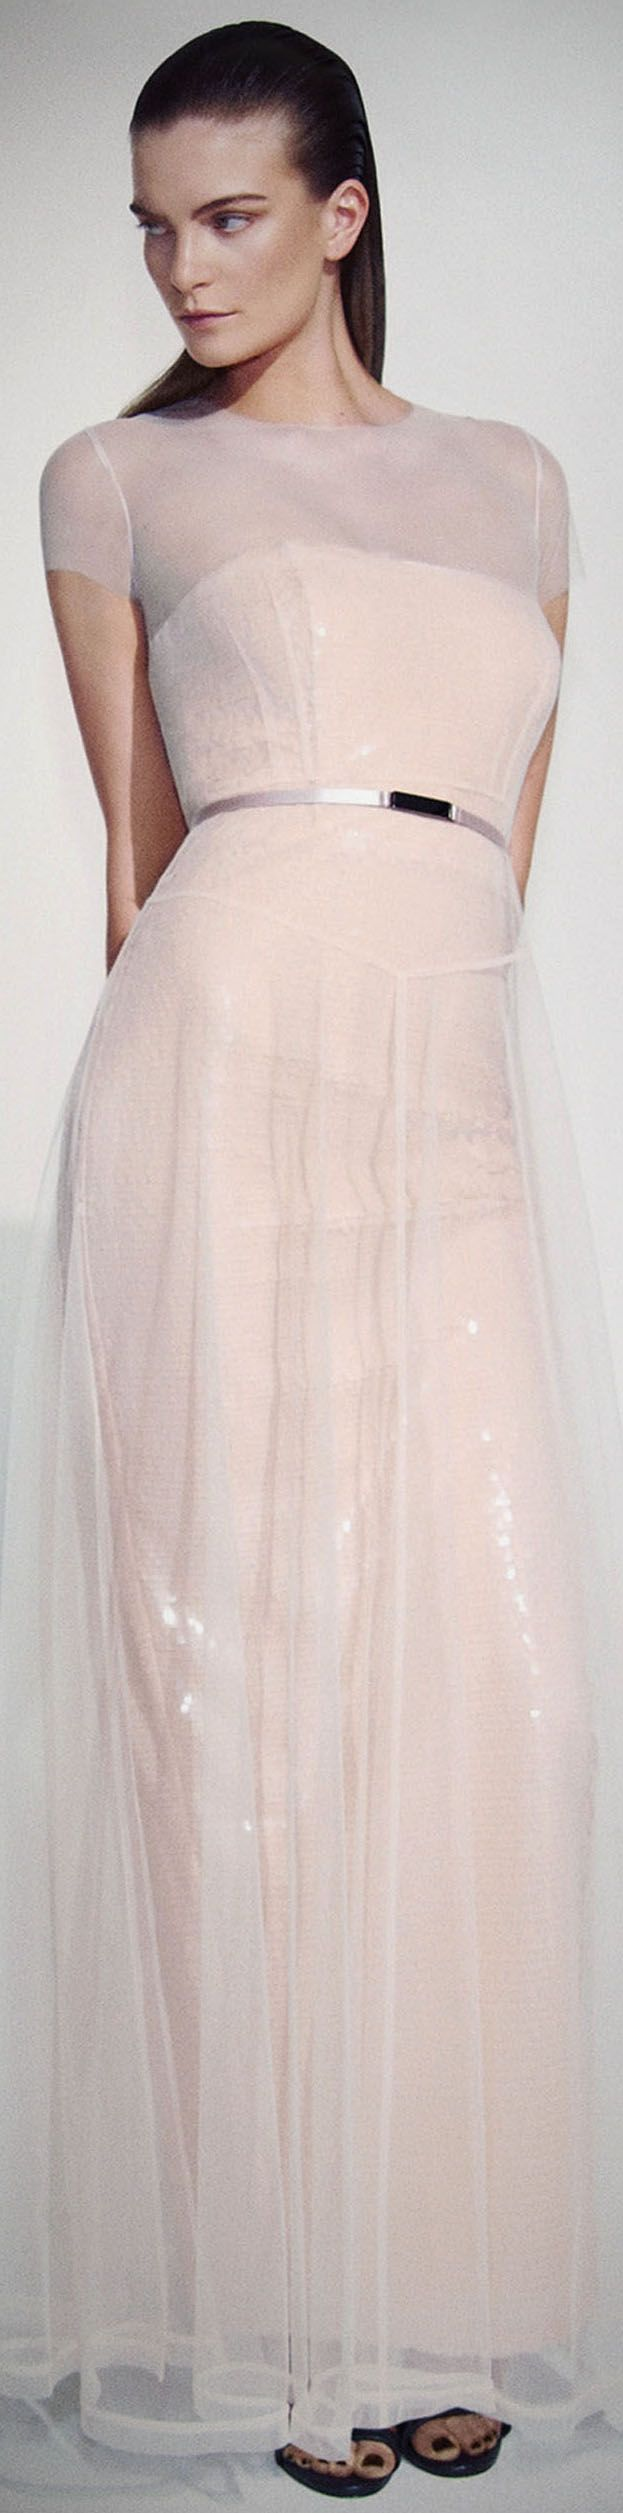 This has a bit more coverage wedding dresses for brides for Wedding dresses over 50